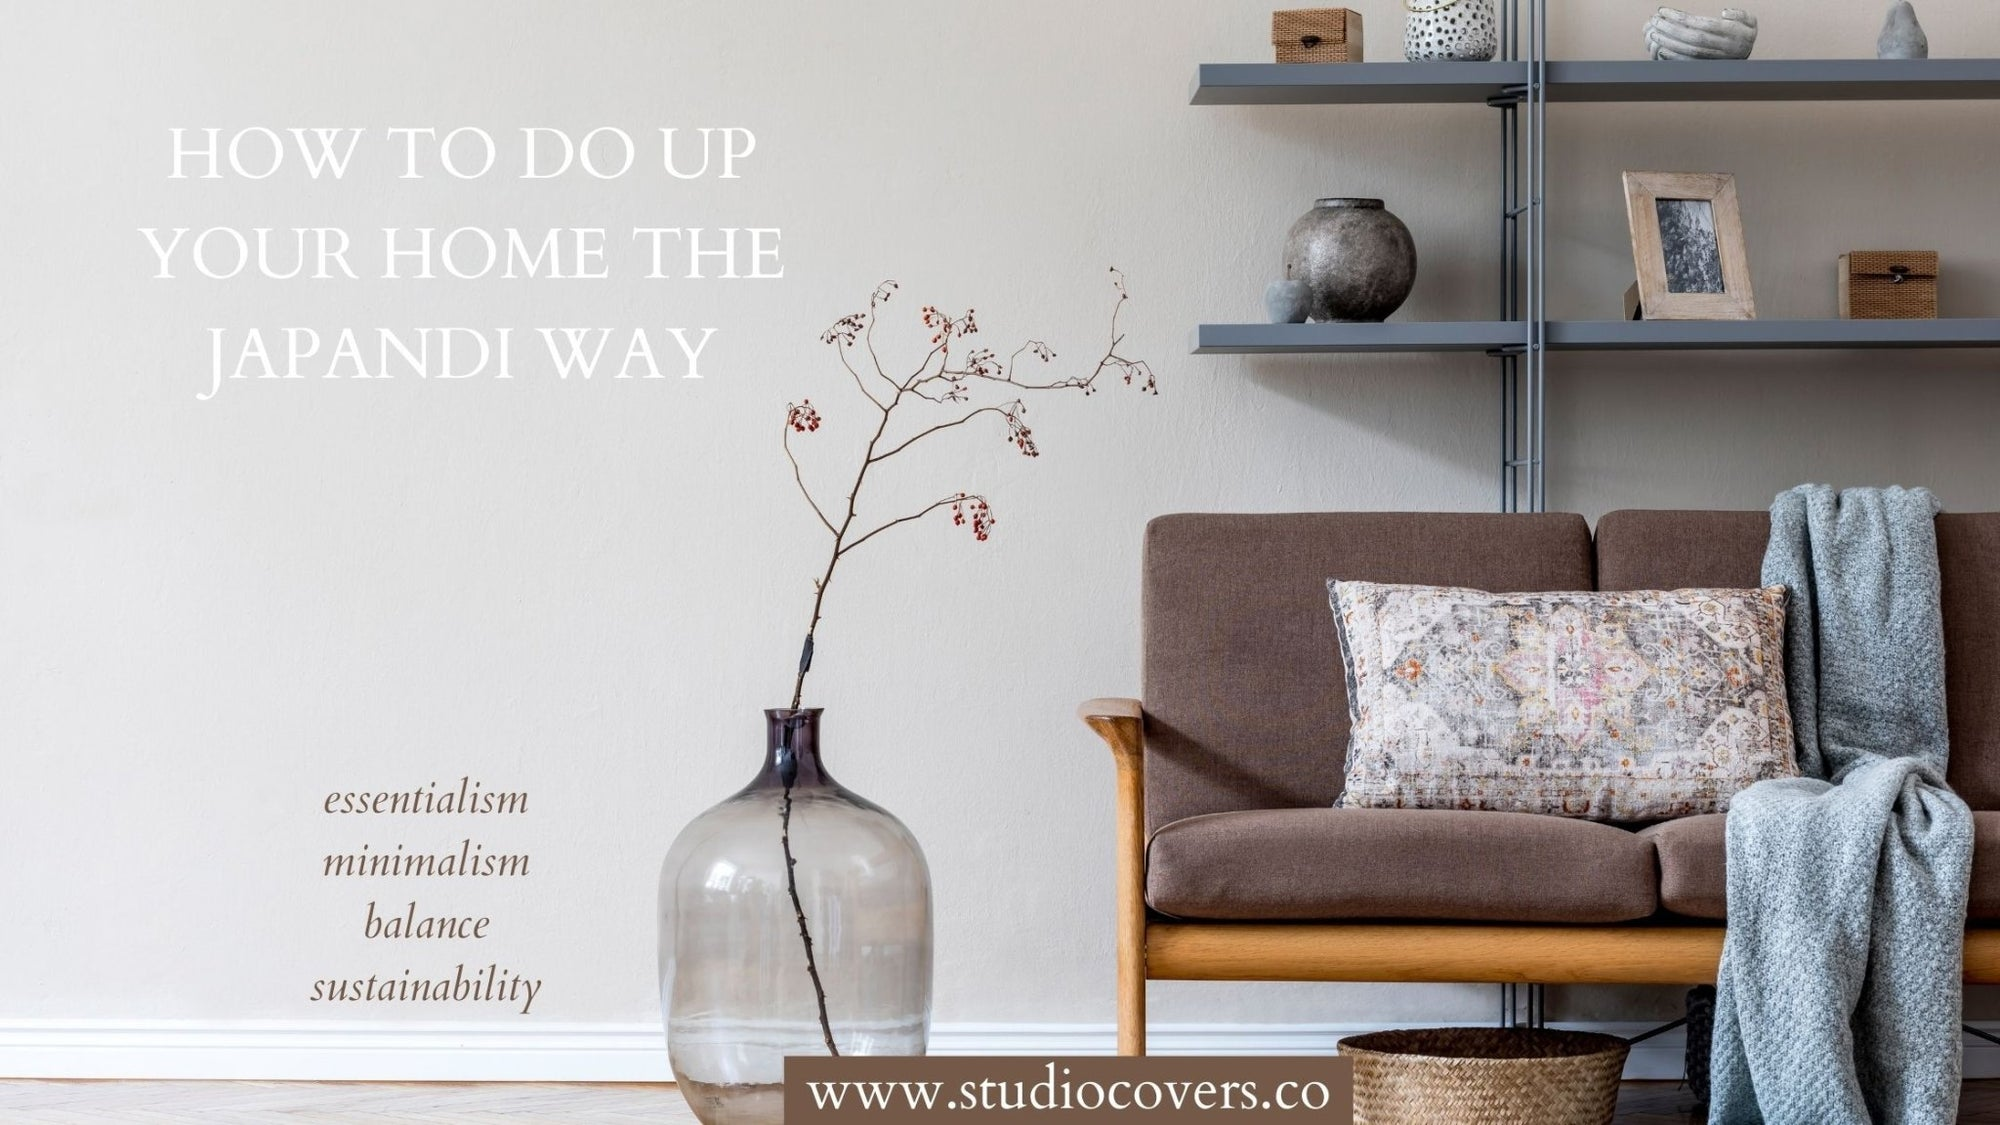 How To Decorate The Japandi Way: Tips and Tricks For You | Studio Covers